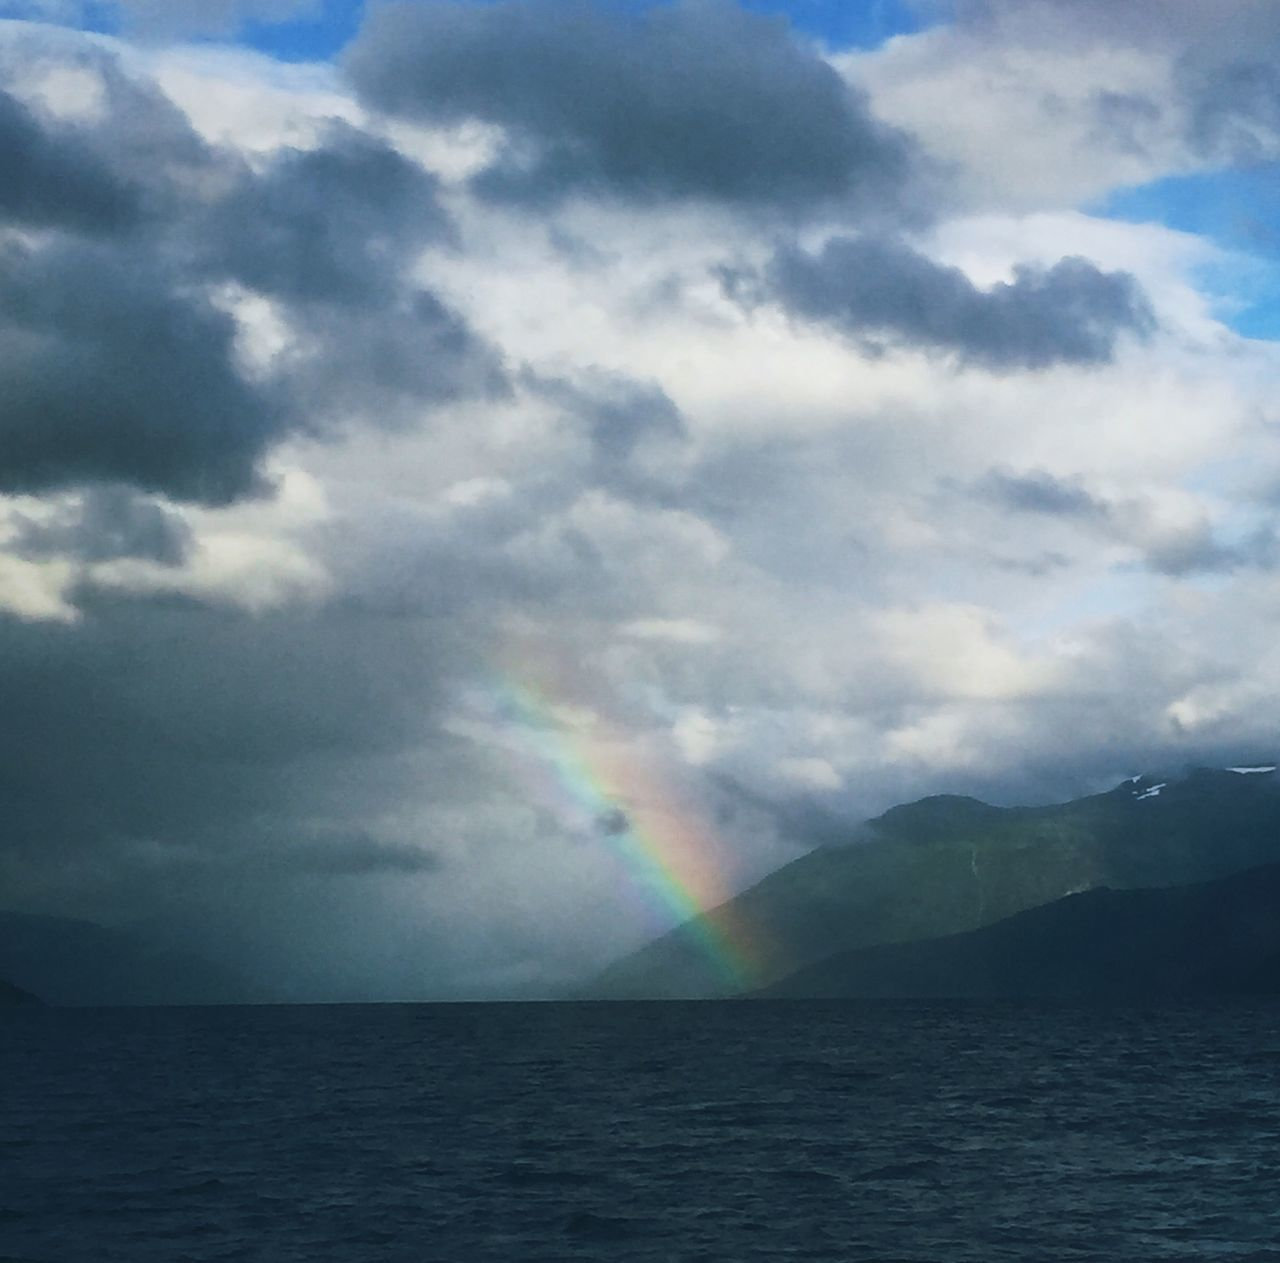 rainbow, scenics, sky, cloud - sky, beauty in nature, double rainbow, nature, water, weather, no people, tranquil scene, sea, outdoors, tranquility, multi colored, day, horizon over water, spectrum